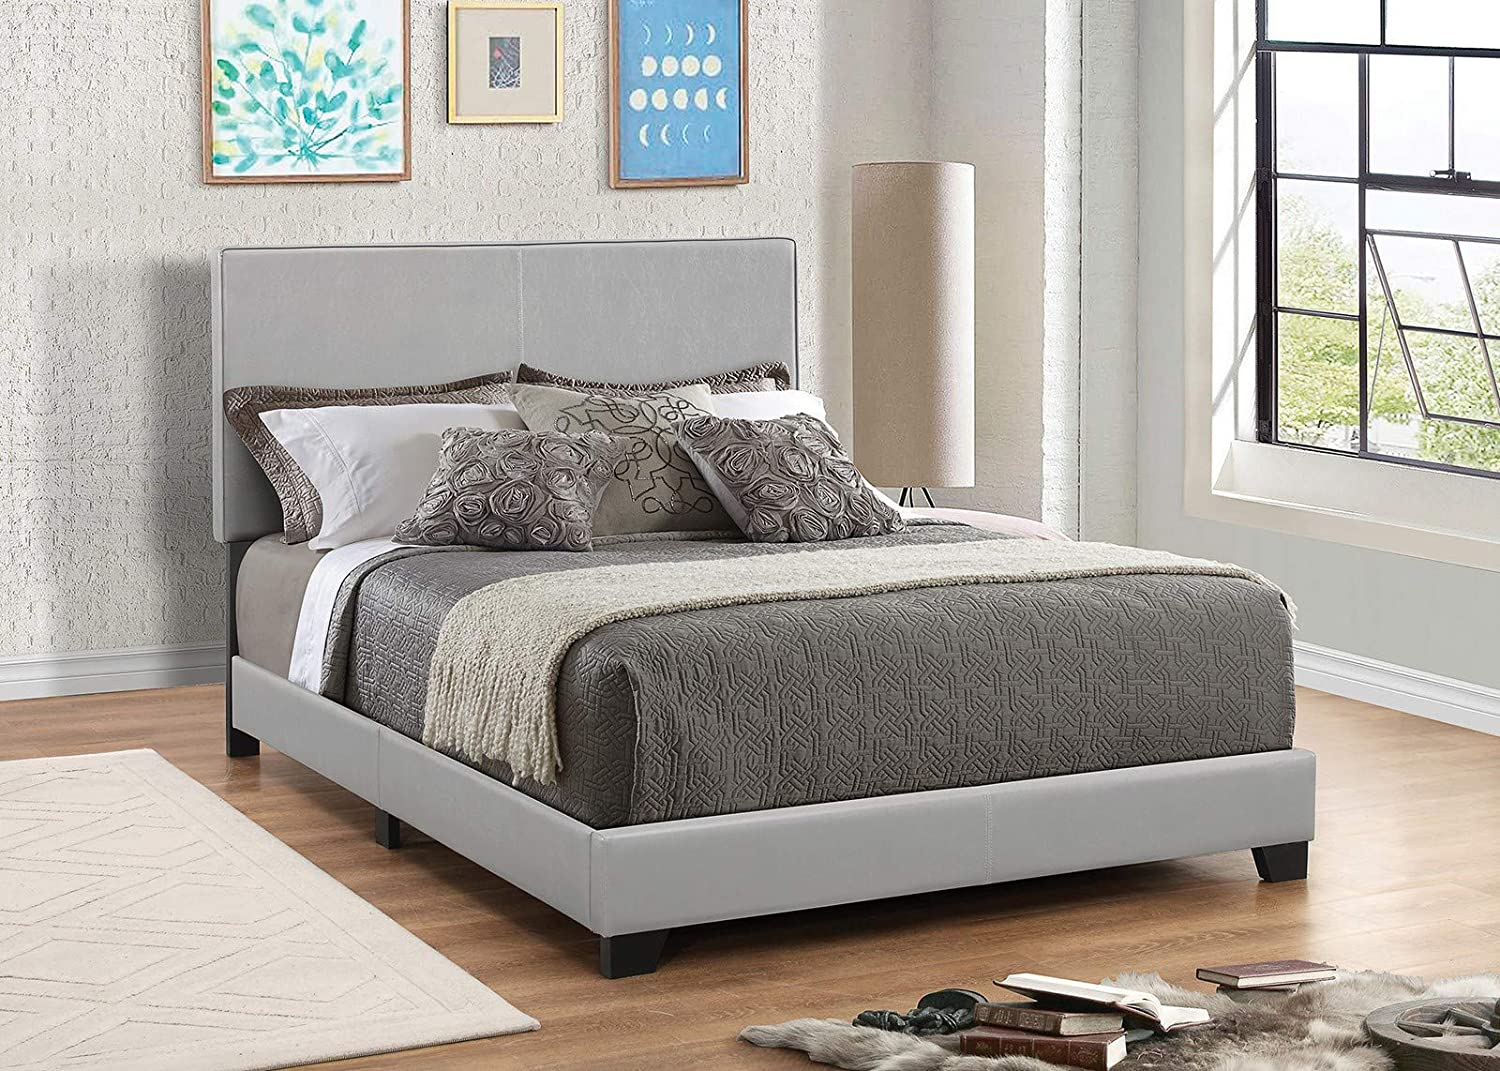 Coaster Home Furnishings Upholstered Bed, 58